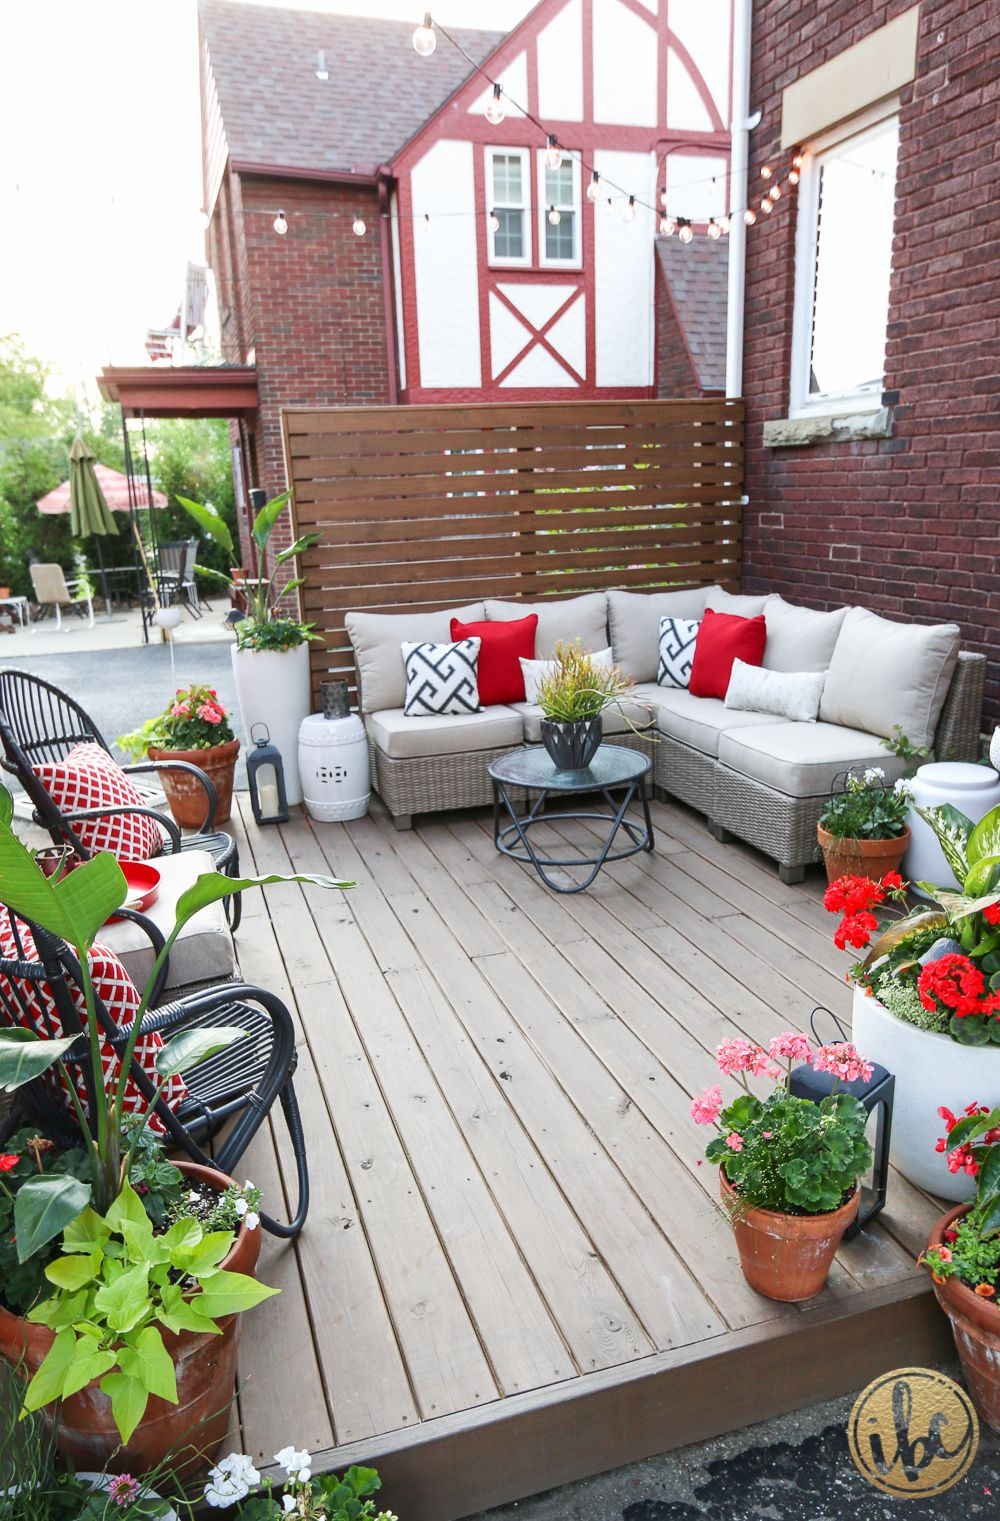 patio deck styling ideas outdoor decorating when on modern deck patio ideas for backyard design and decoration ideas id=25417